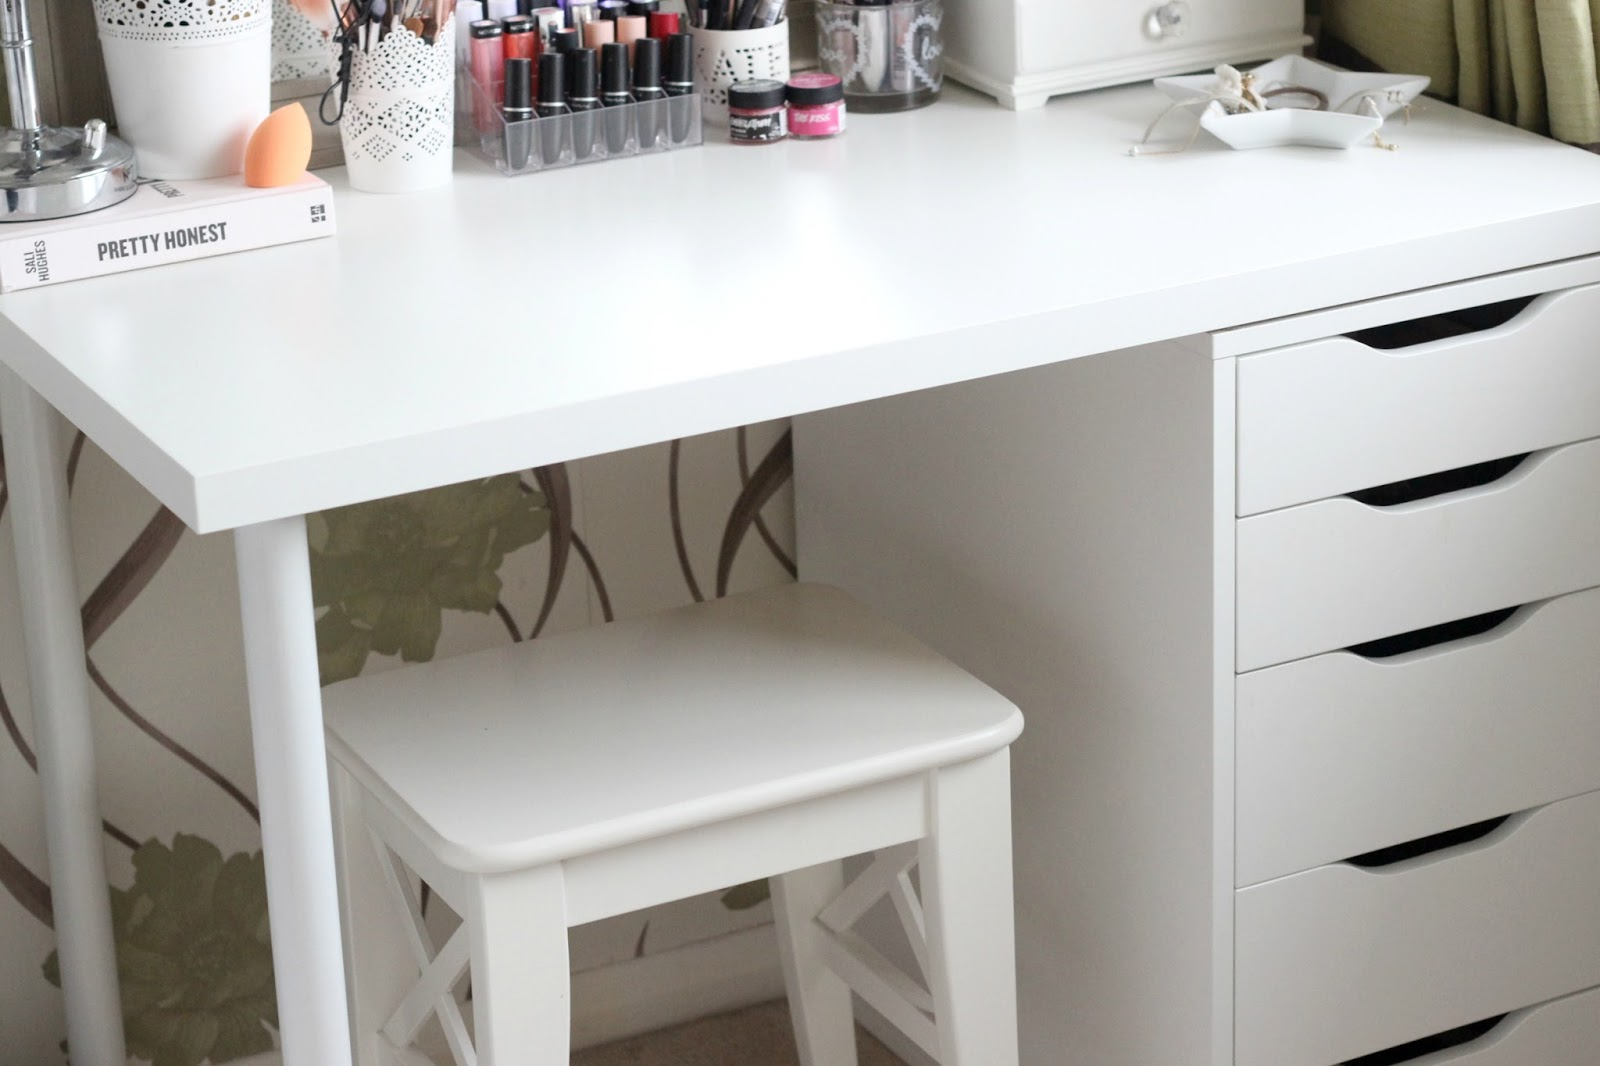 Diy Ikea Vanity Amp Makeup Storage It S Kt